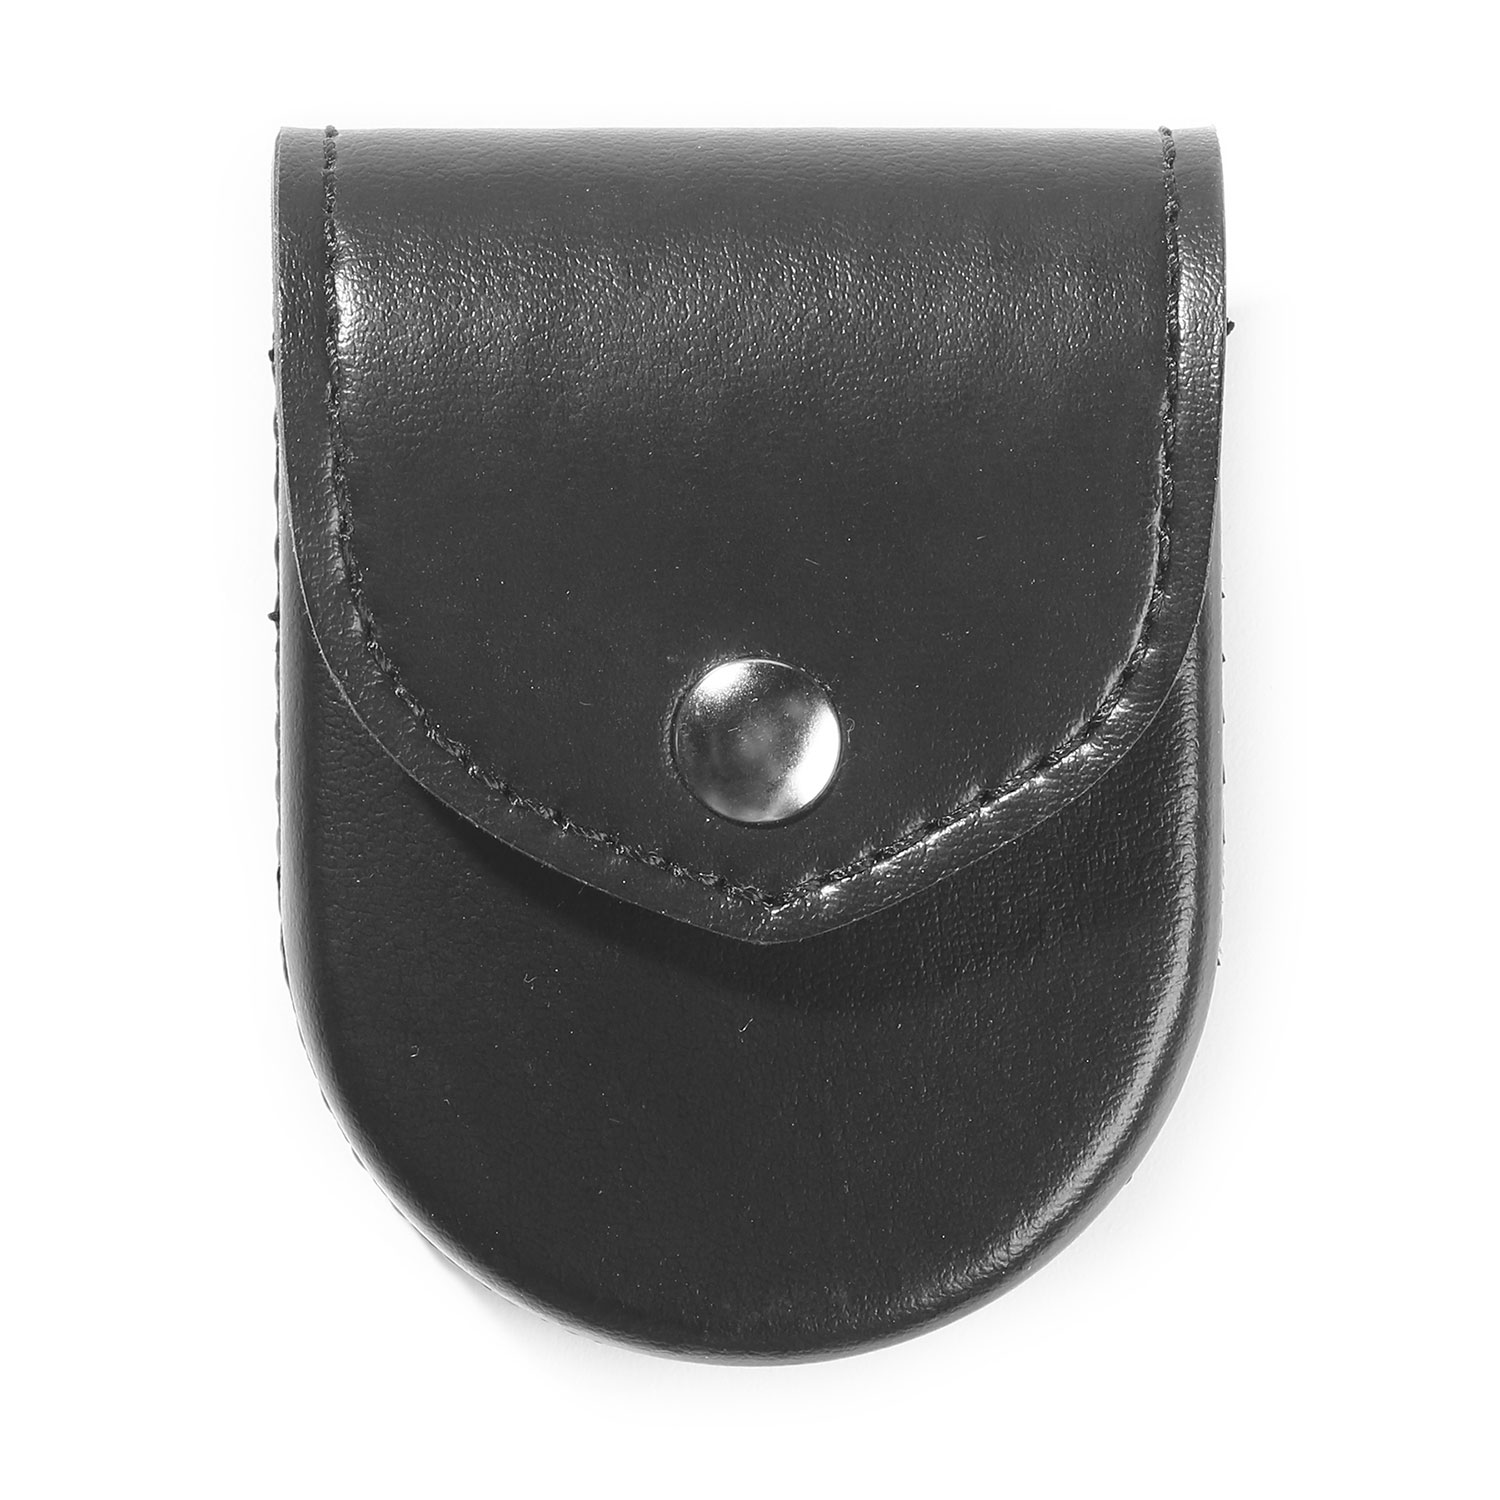 Safariland Safarilaminate Standard Cuff Case with Snap